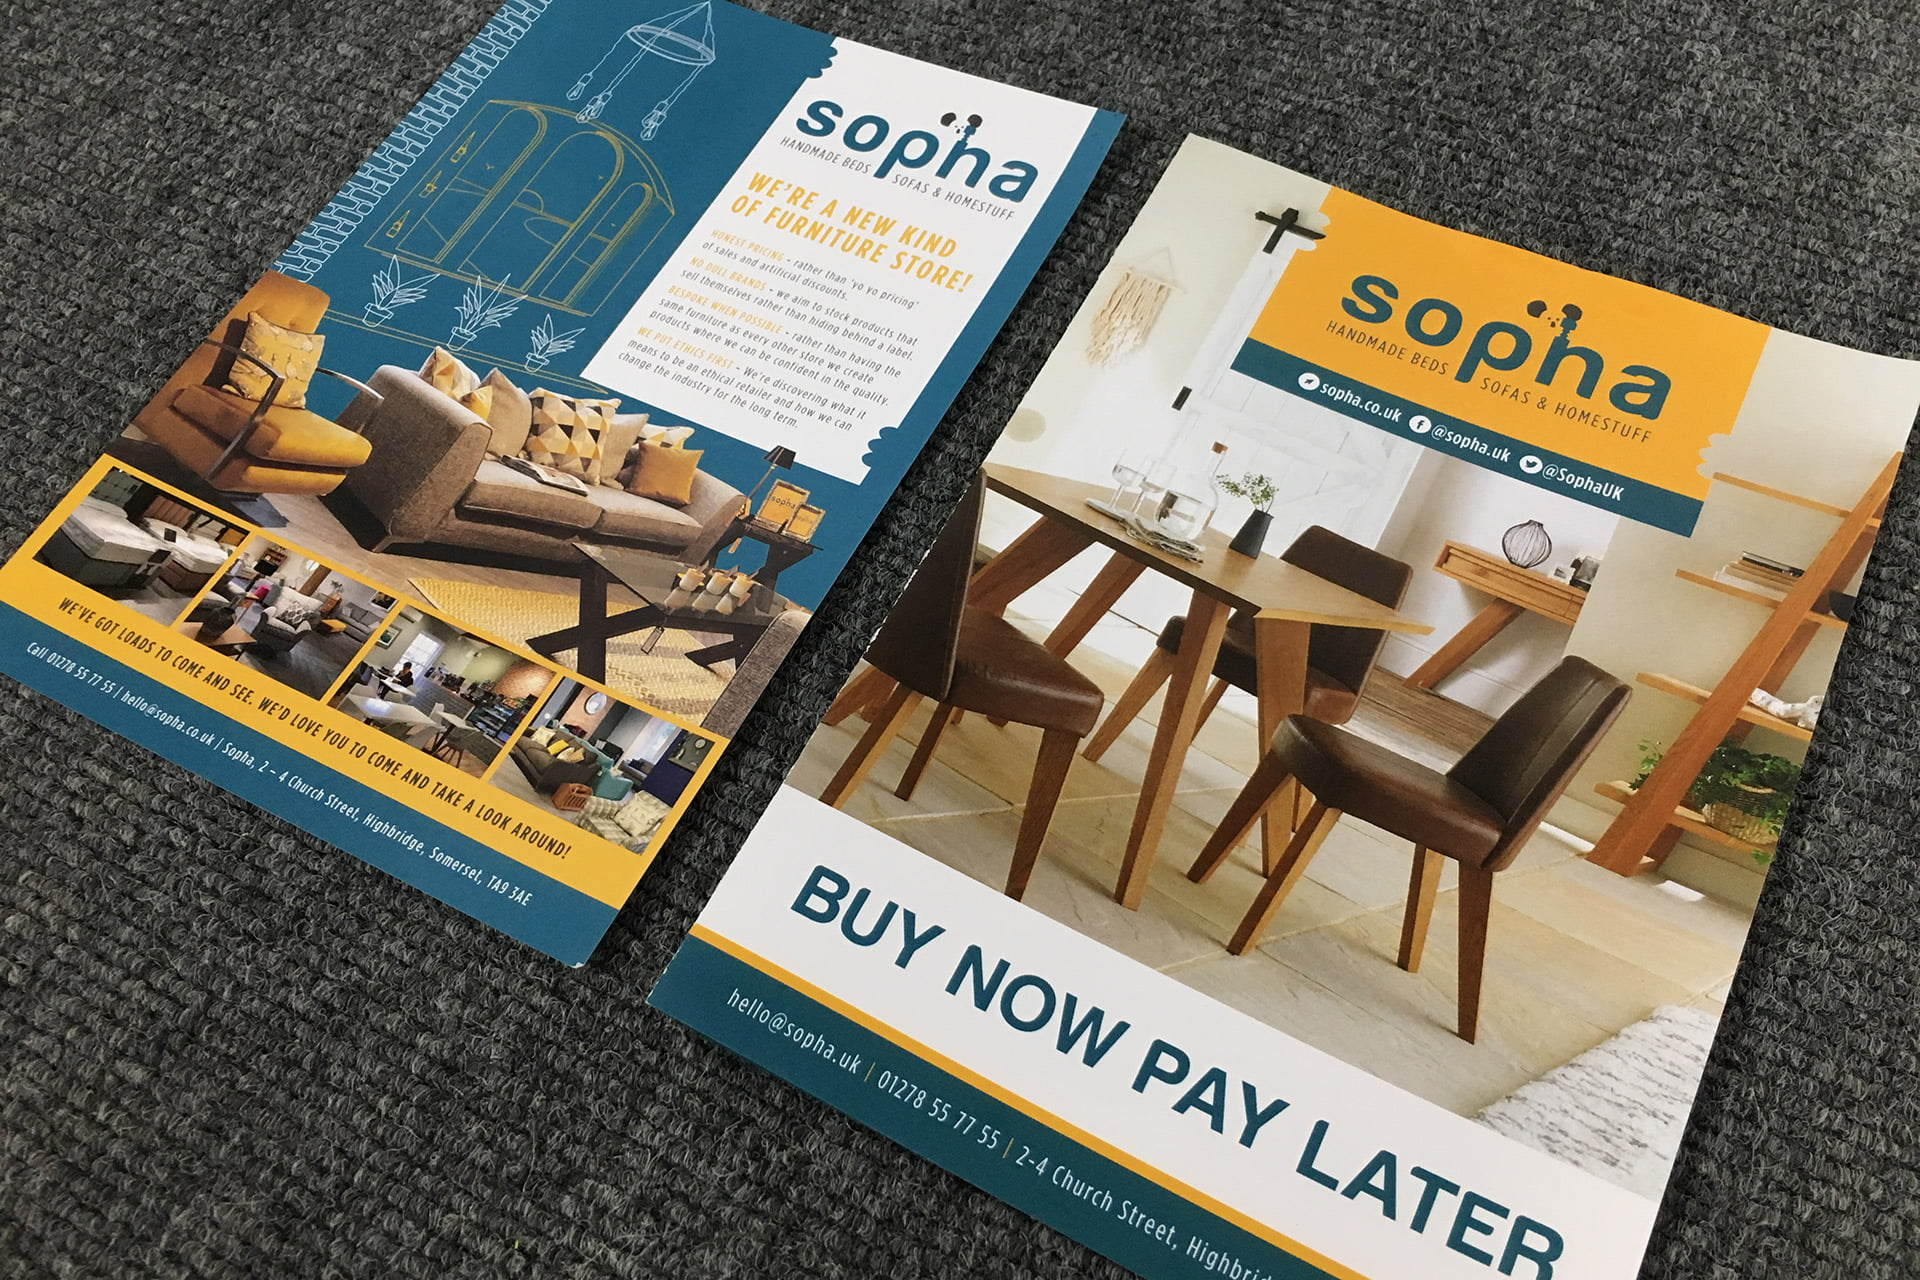 Sopha-furniture-flyer-design-Somerset